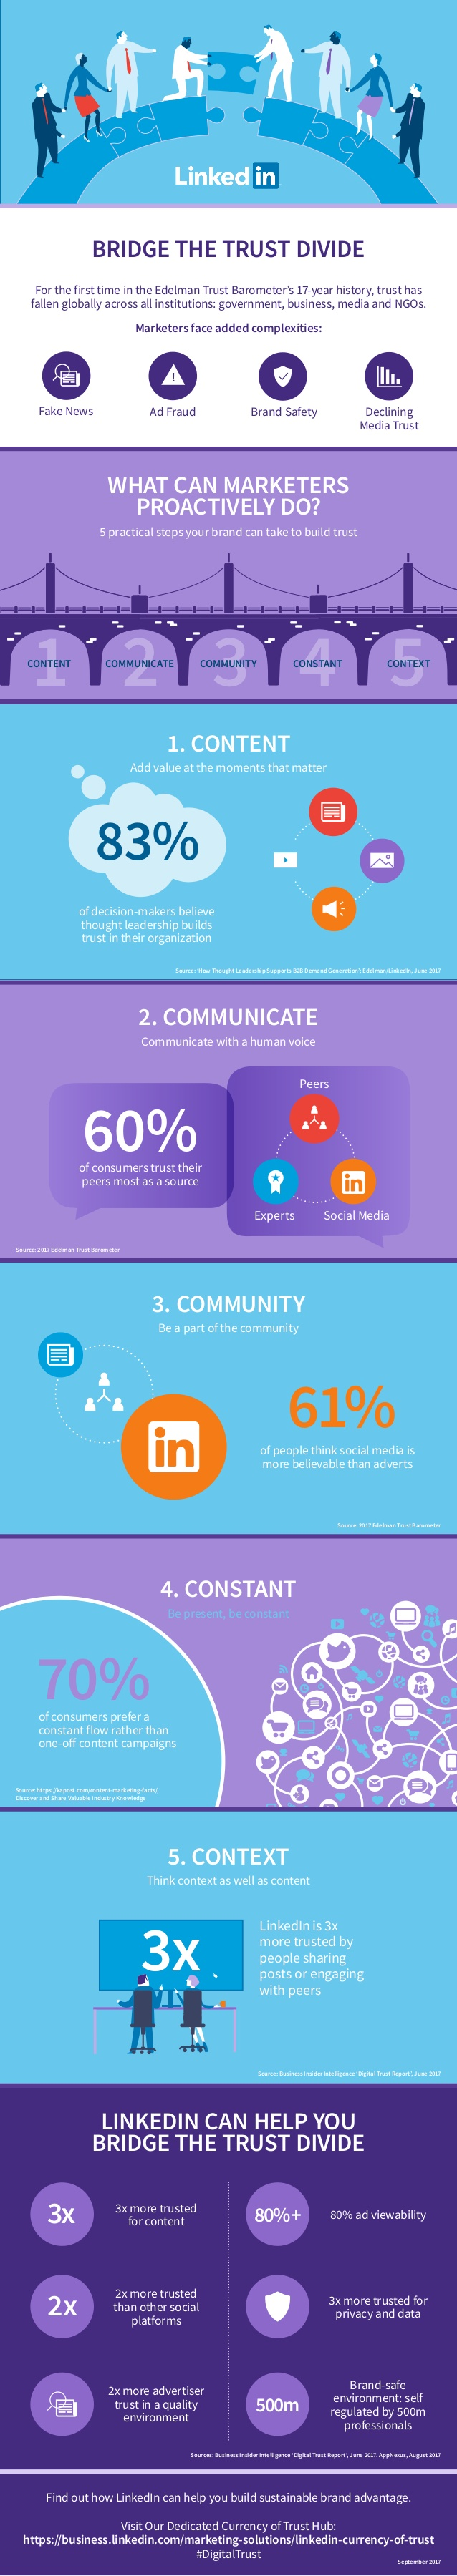 5 Practical Steps Your Brand Can Take to Build Trust [Infographic] | Social Media Today